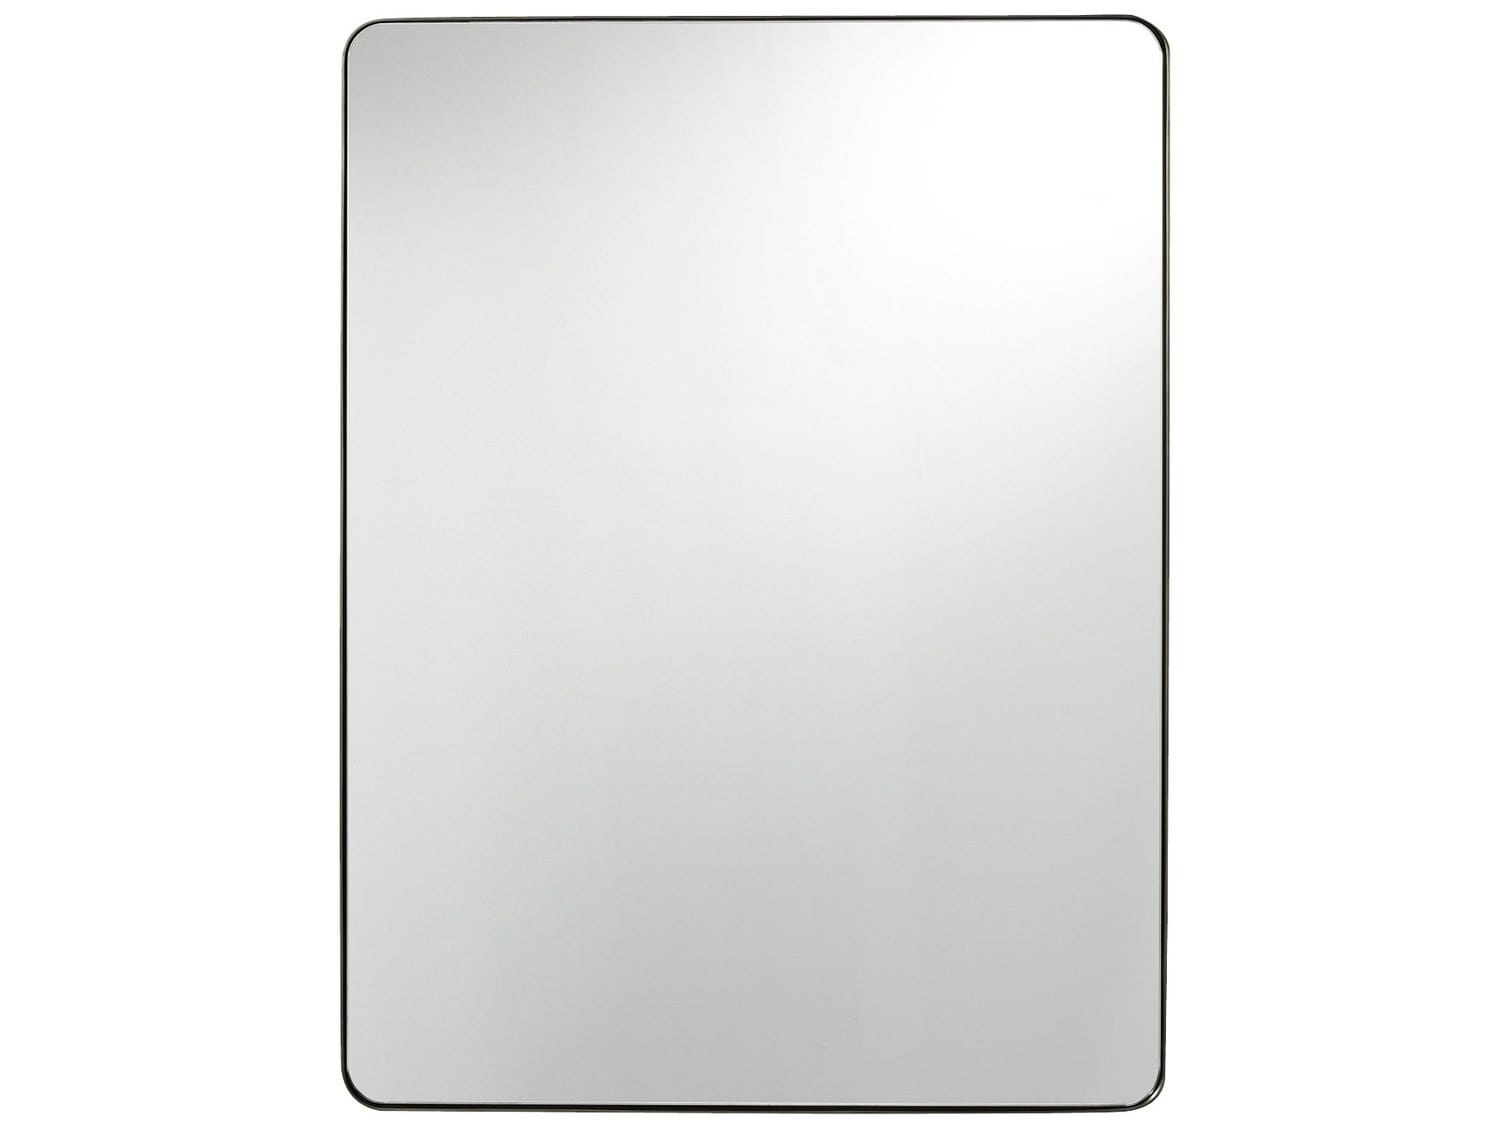 Alchemy Living Alchemy Living Stile Shelby Accent Mirror - Brown 656B05M